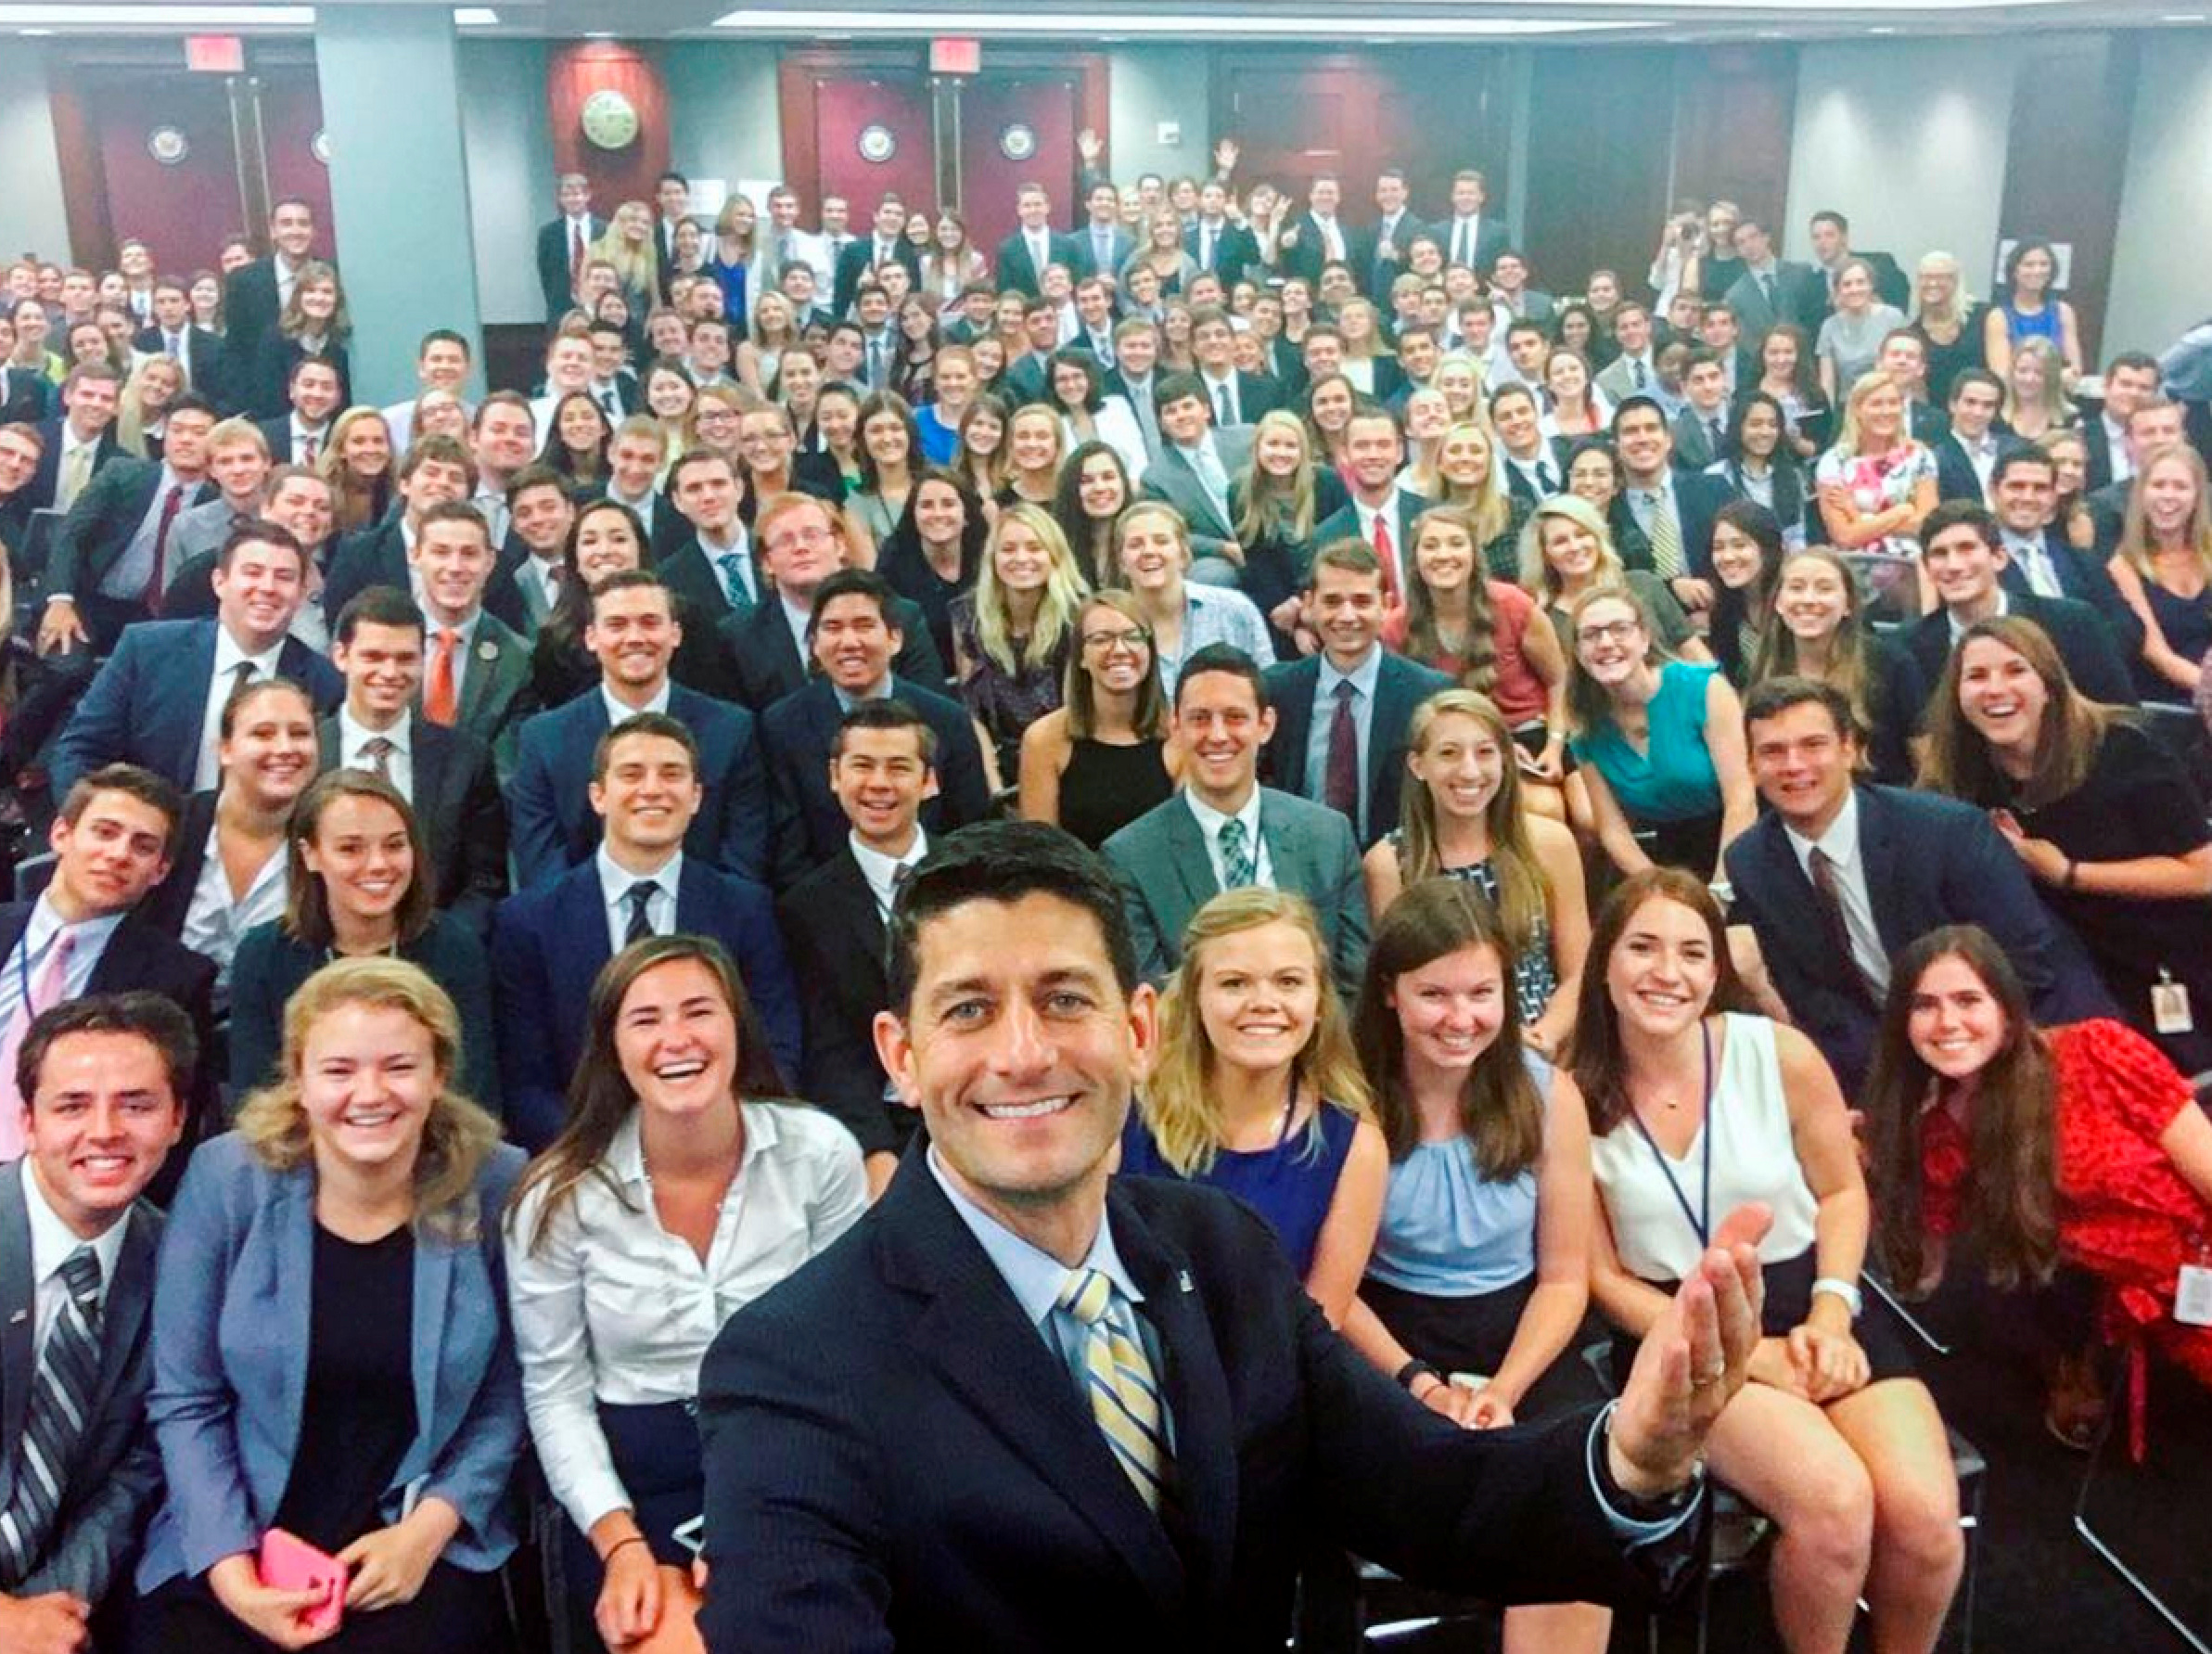 A group of Capitol Hill interns pose for a picture taken by Republican Speaker of the House Paul Ryan